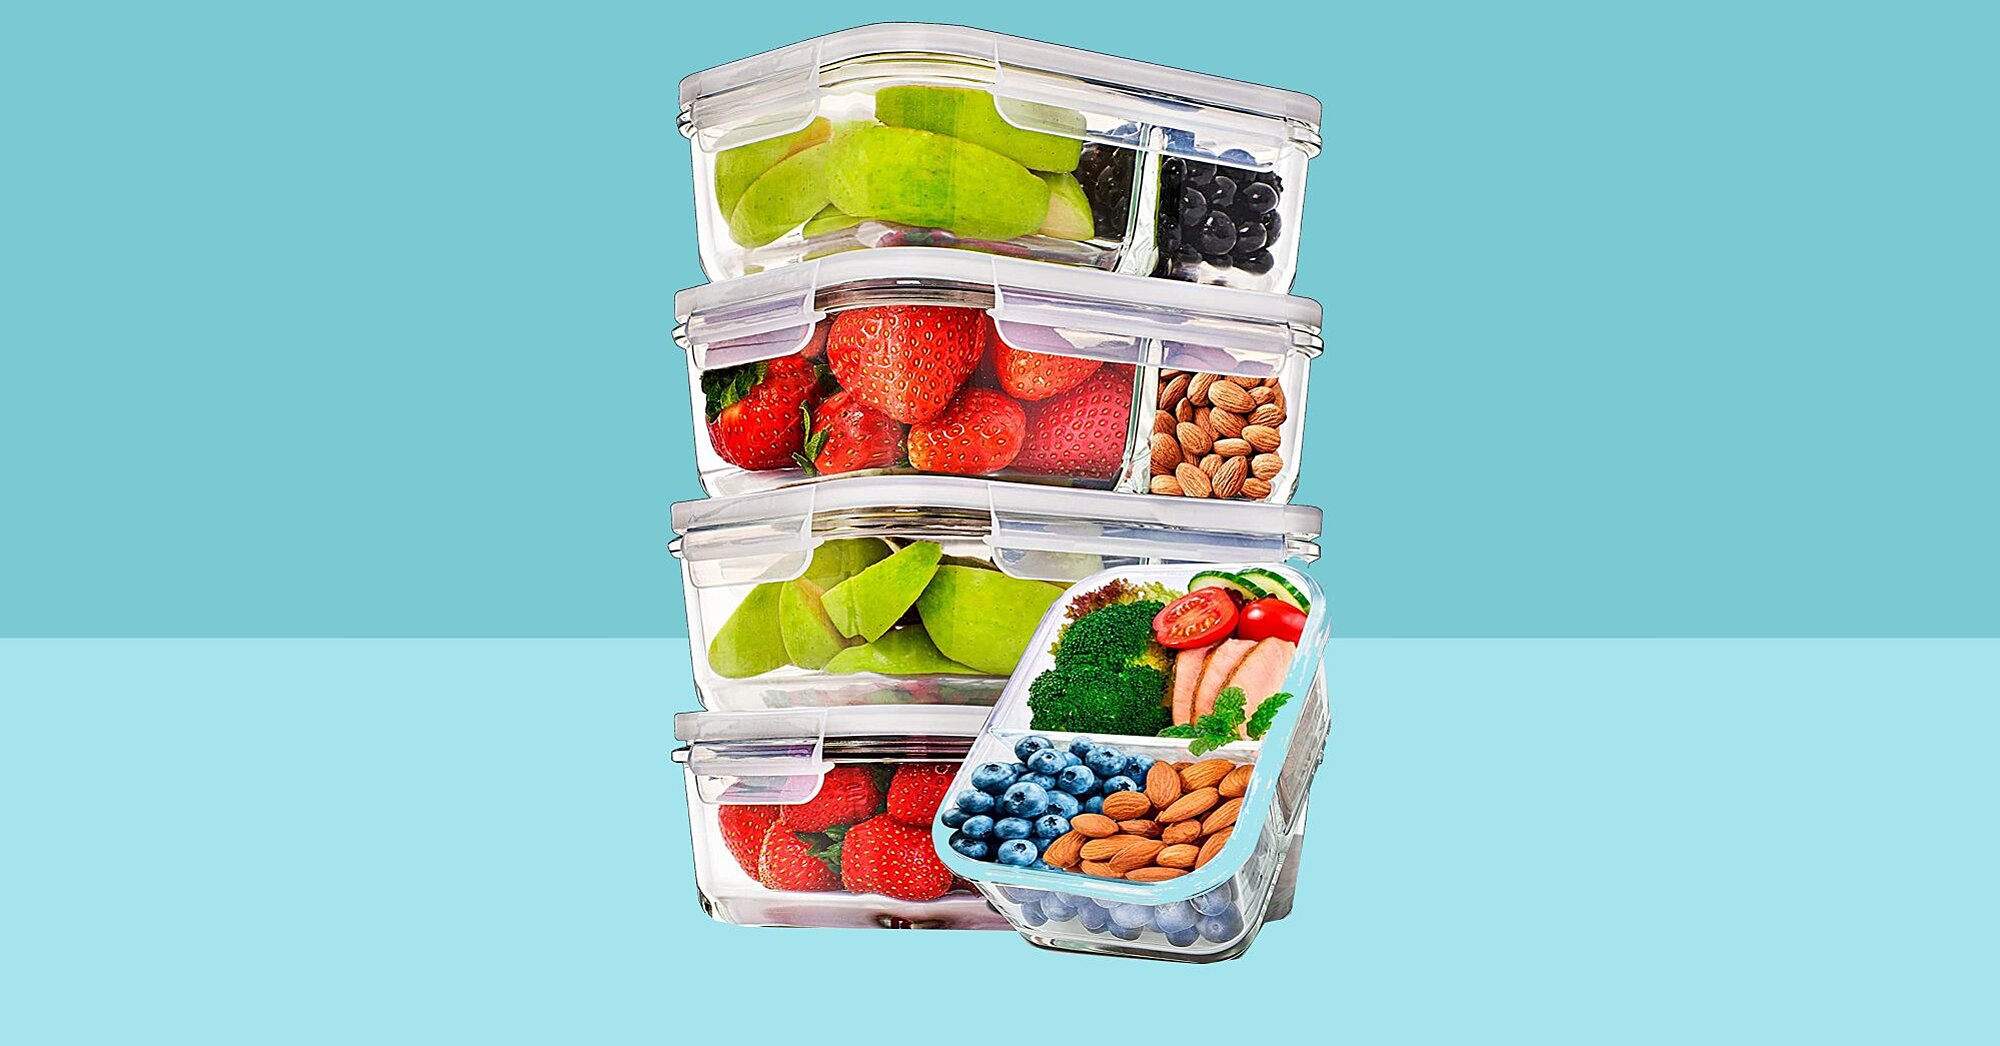 The 10 Best Food Storage Containers for Every Kitchen's Needs, According to Reviews